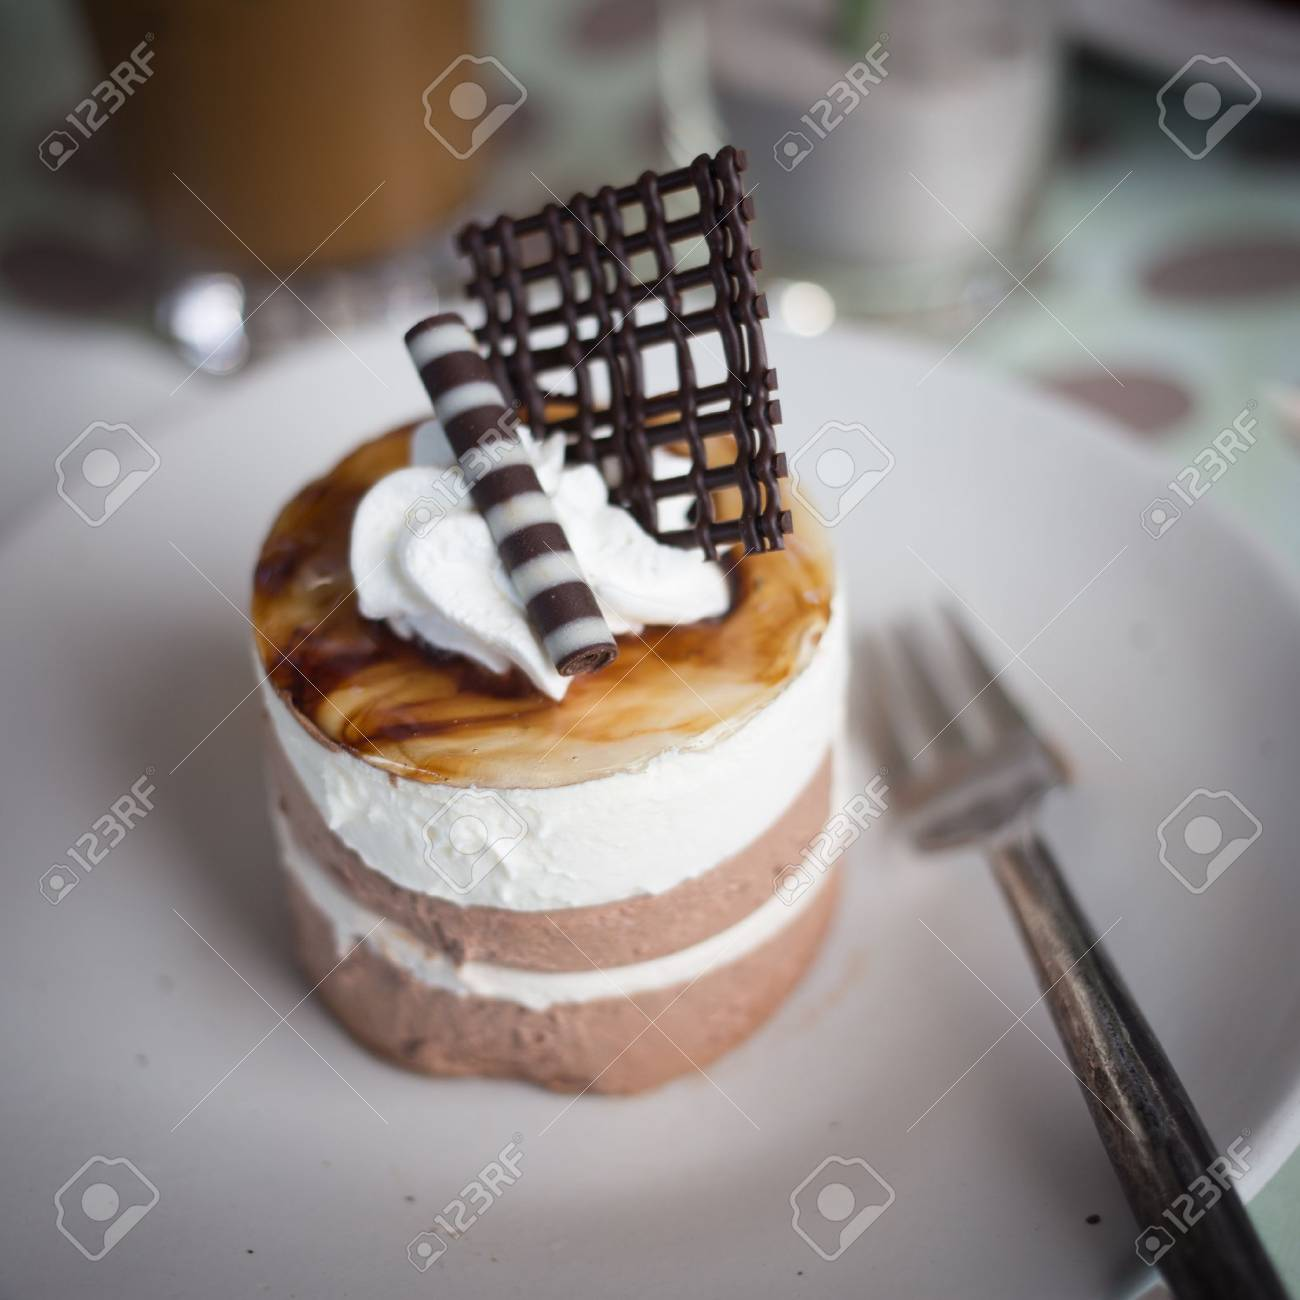 Chocolate mousse cake in coffee shop Stock Photo - 21951833